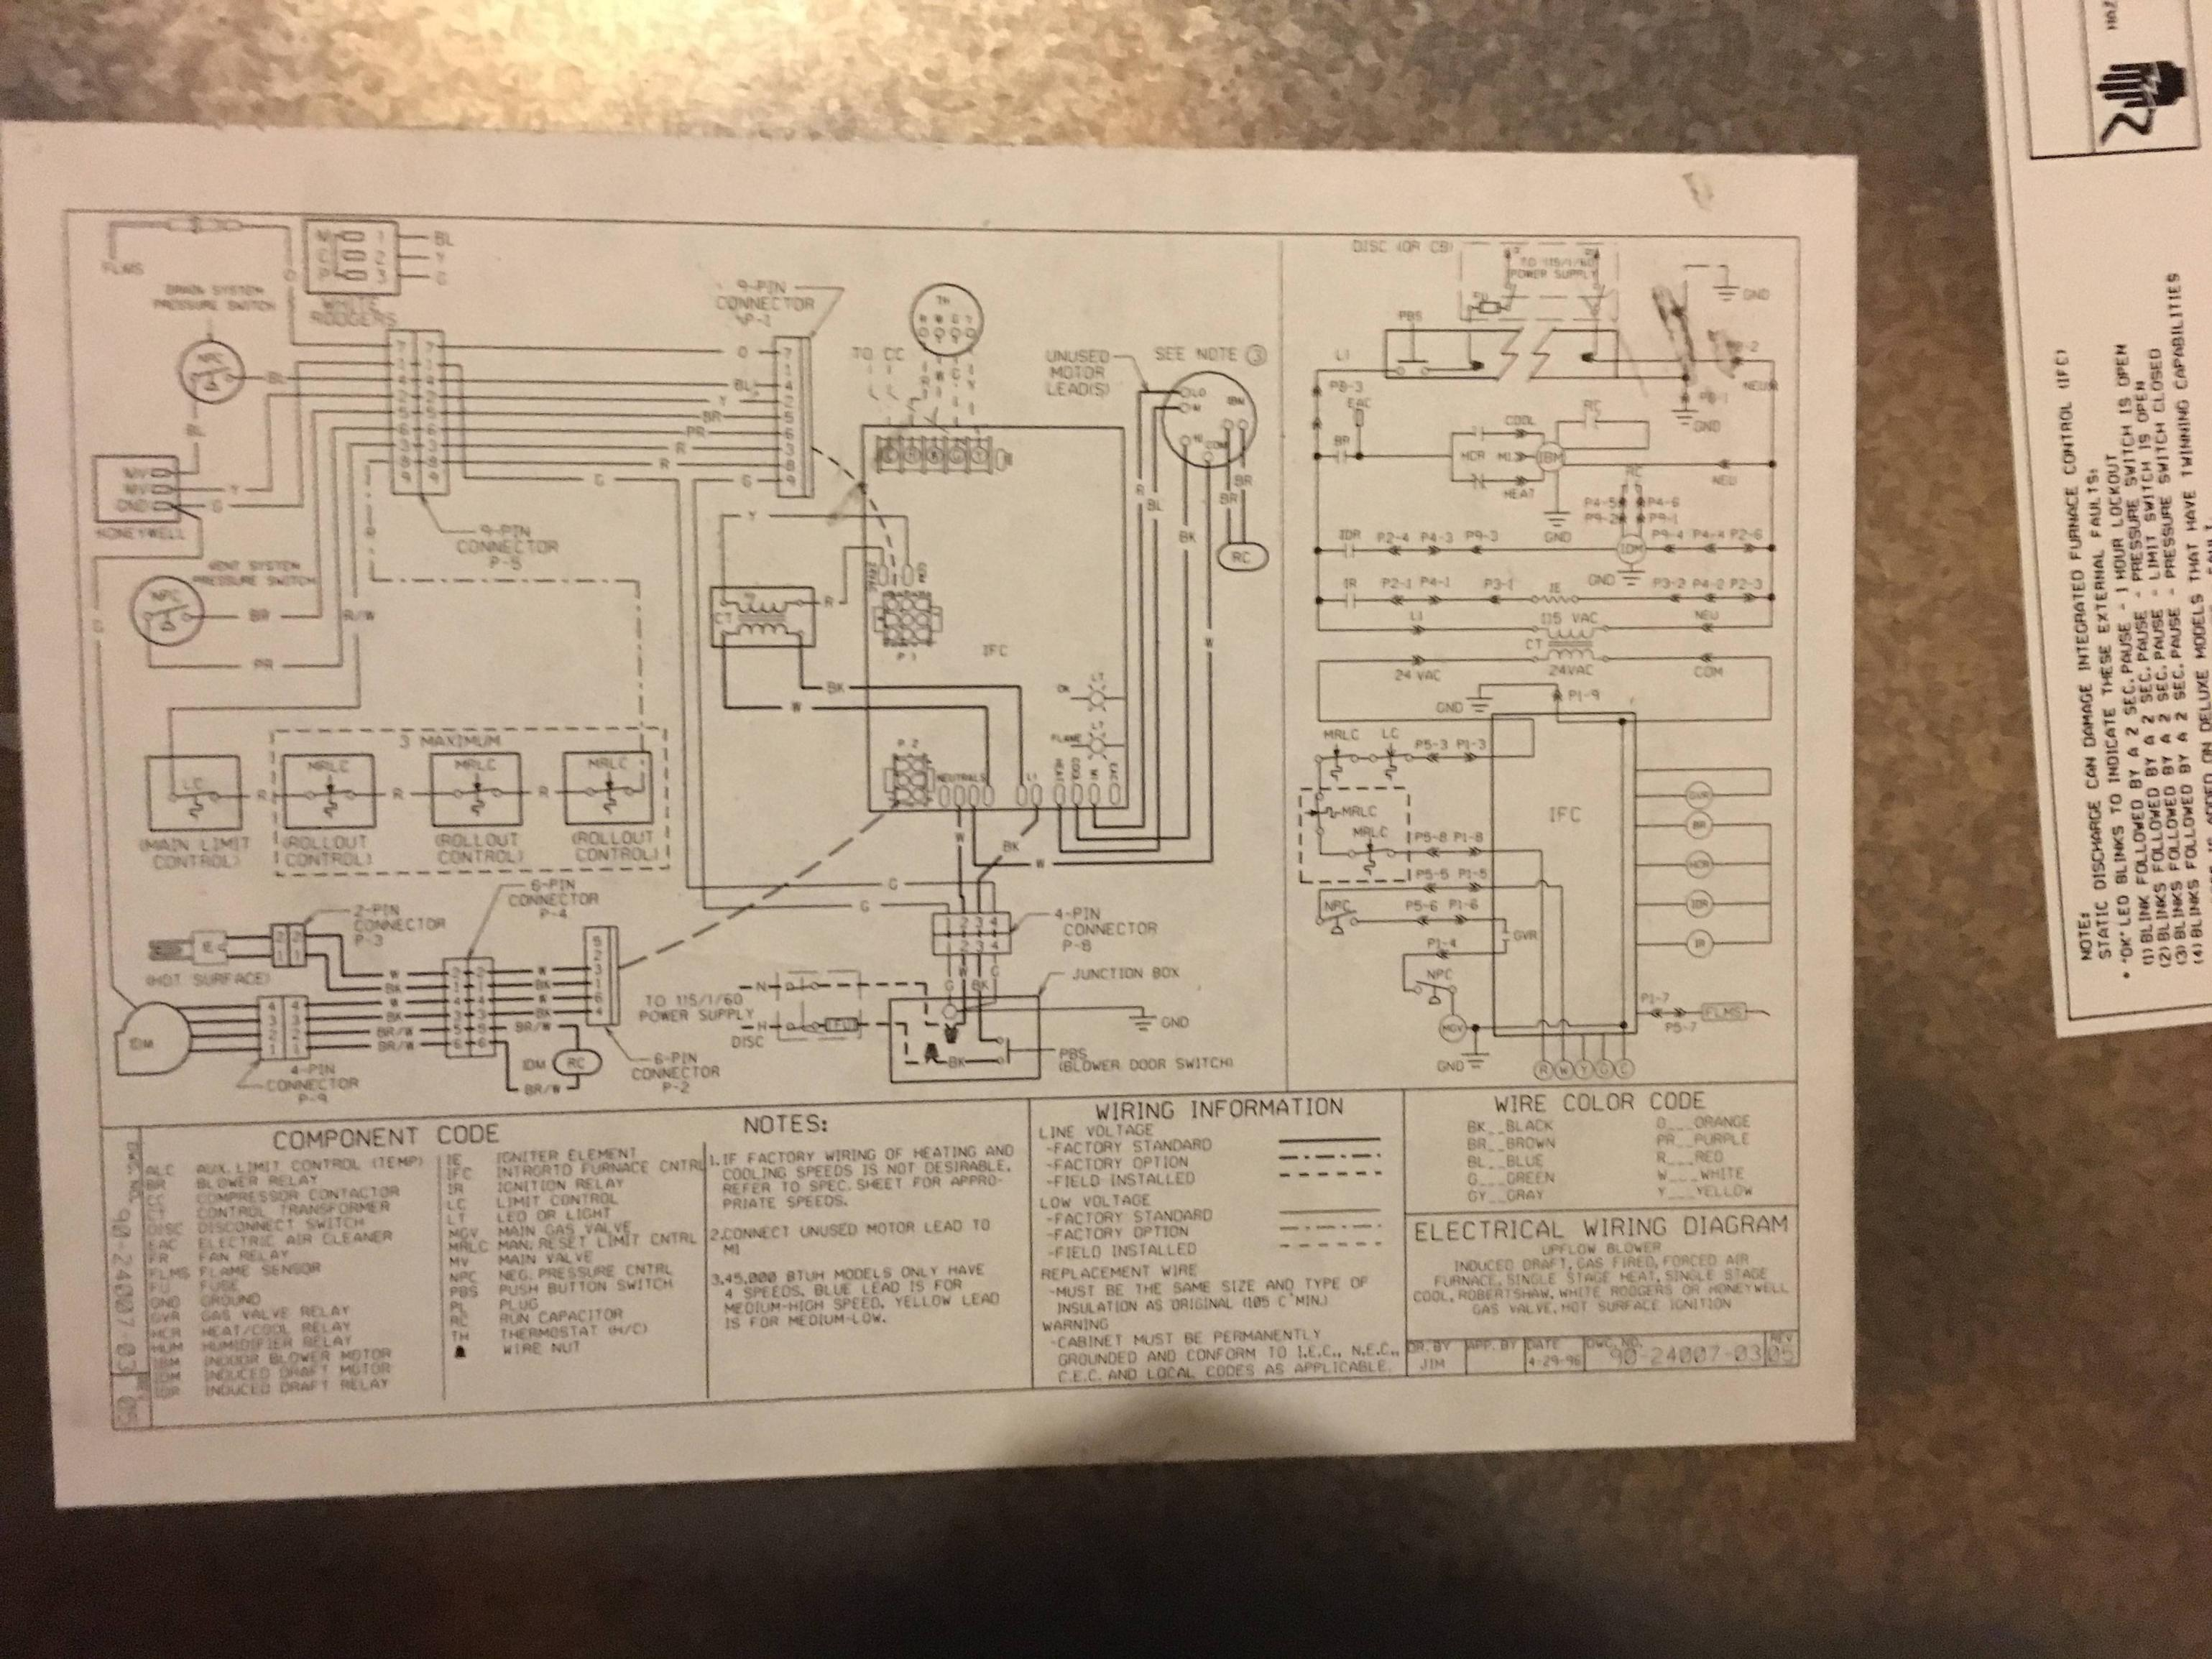 rheem air conditioner thermostat wiring diagram electrical switch loop - can i connect the r and c wires directly to hvac transformer? home ...